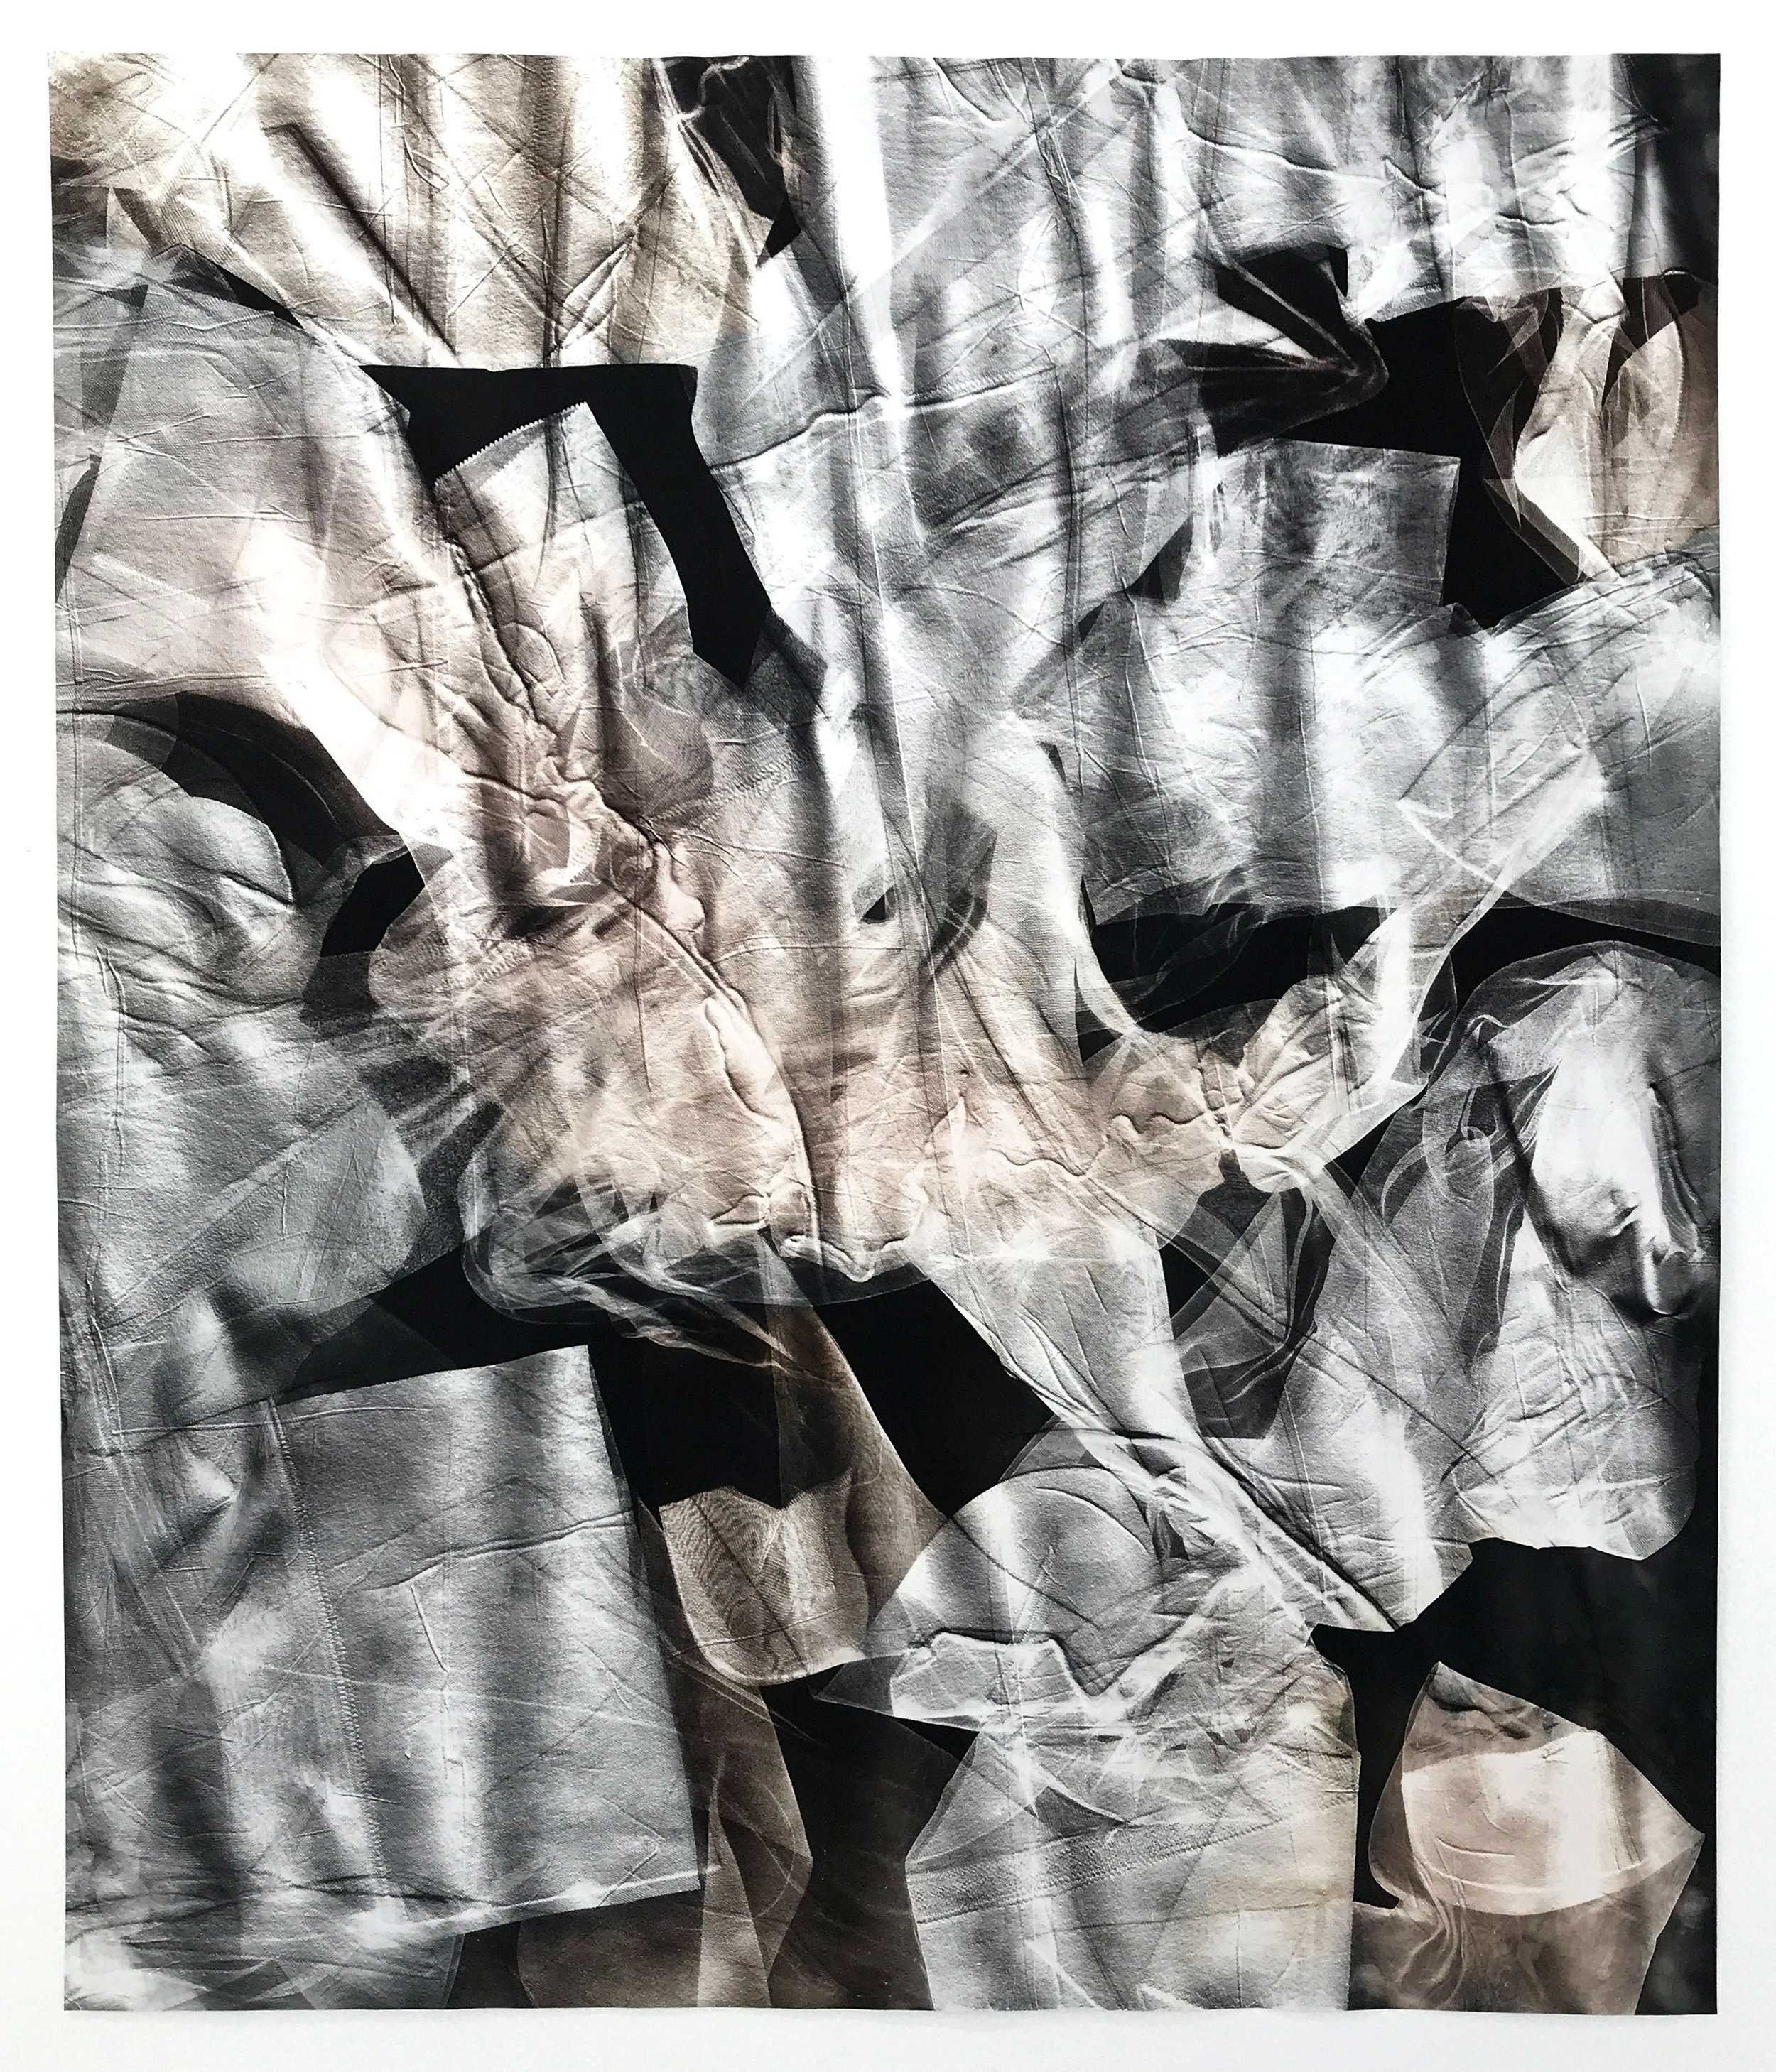 KLEA MCKENNA Skins (6), 2019 Photographic Relief. Unique Photogram on gelatin silver fiber paper. Selenium toned. Impression of Nylon stockings. United States. 1950s – 1960s. 24 x 20 inches